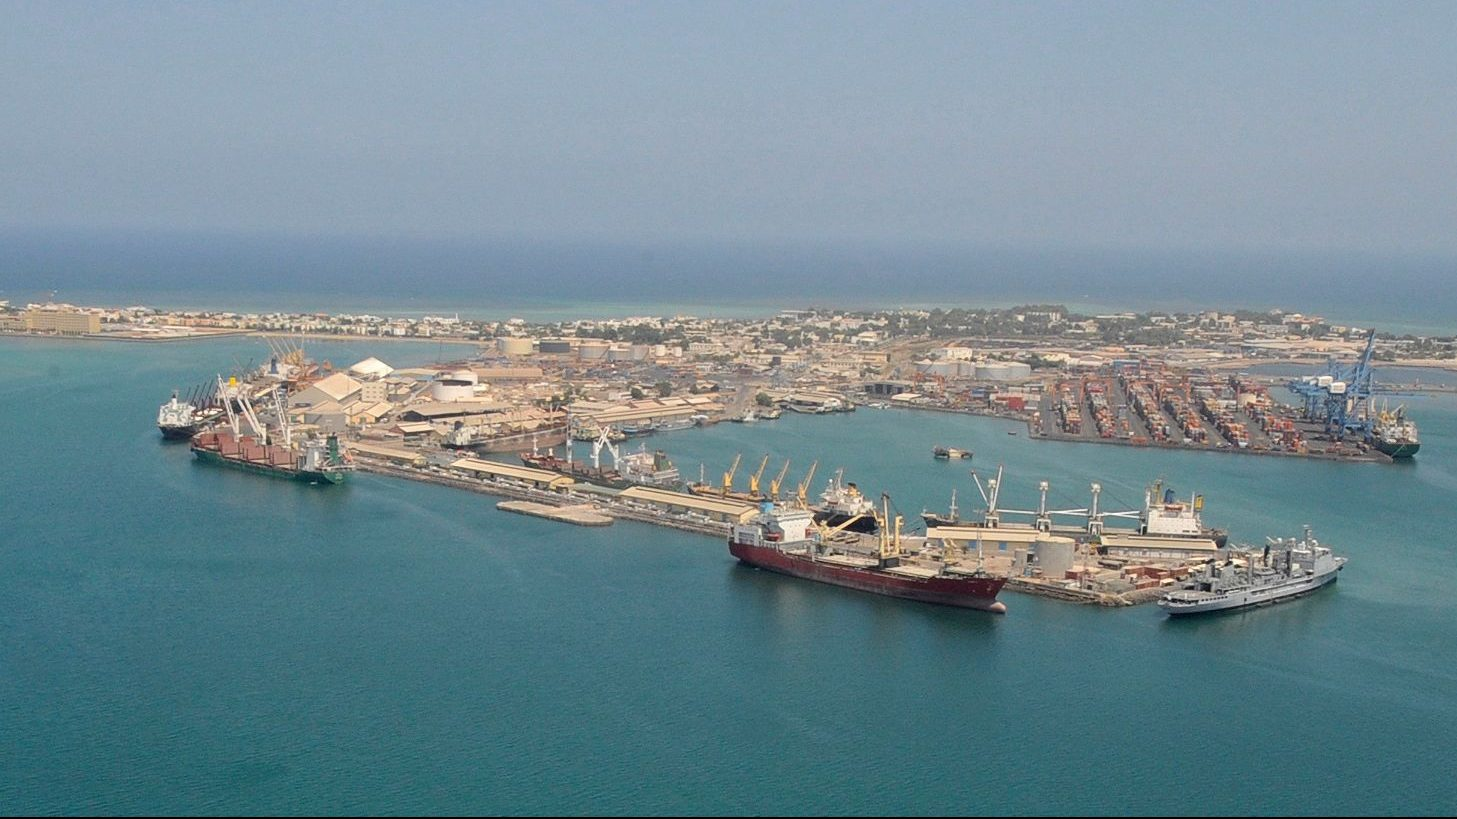 shipping ships seen off the coast of Djibouti in the Gulf of Aden